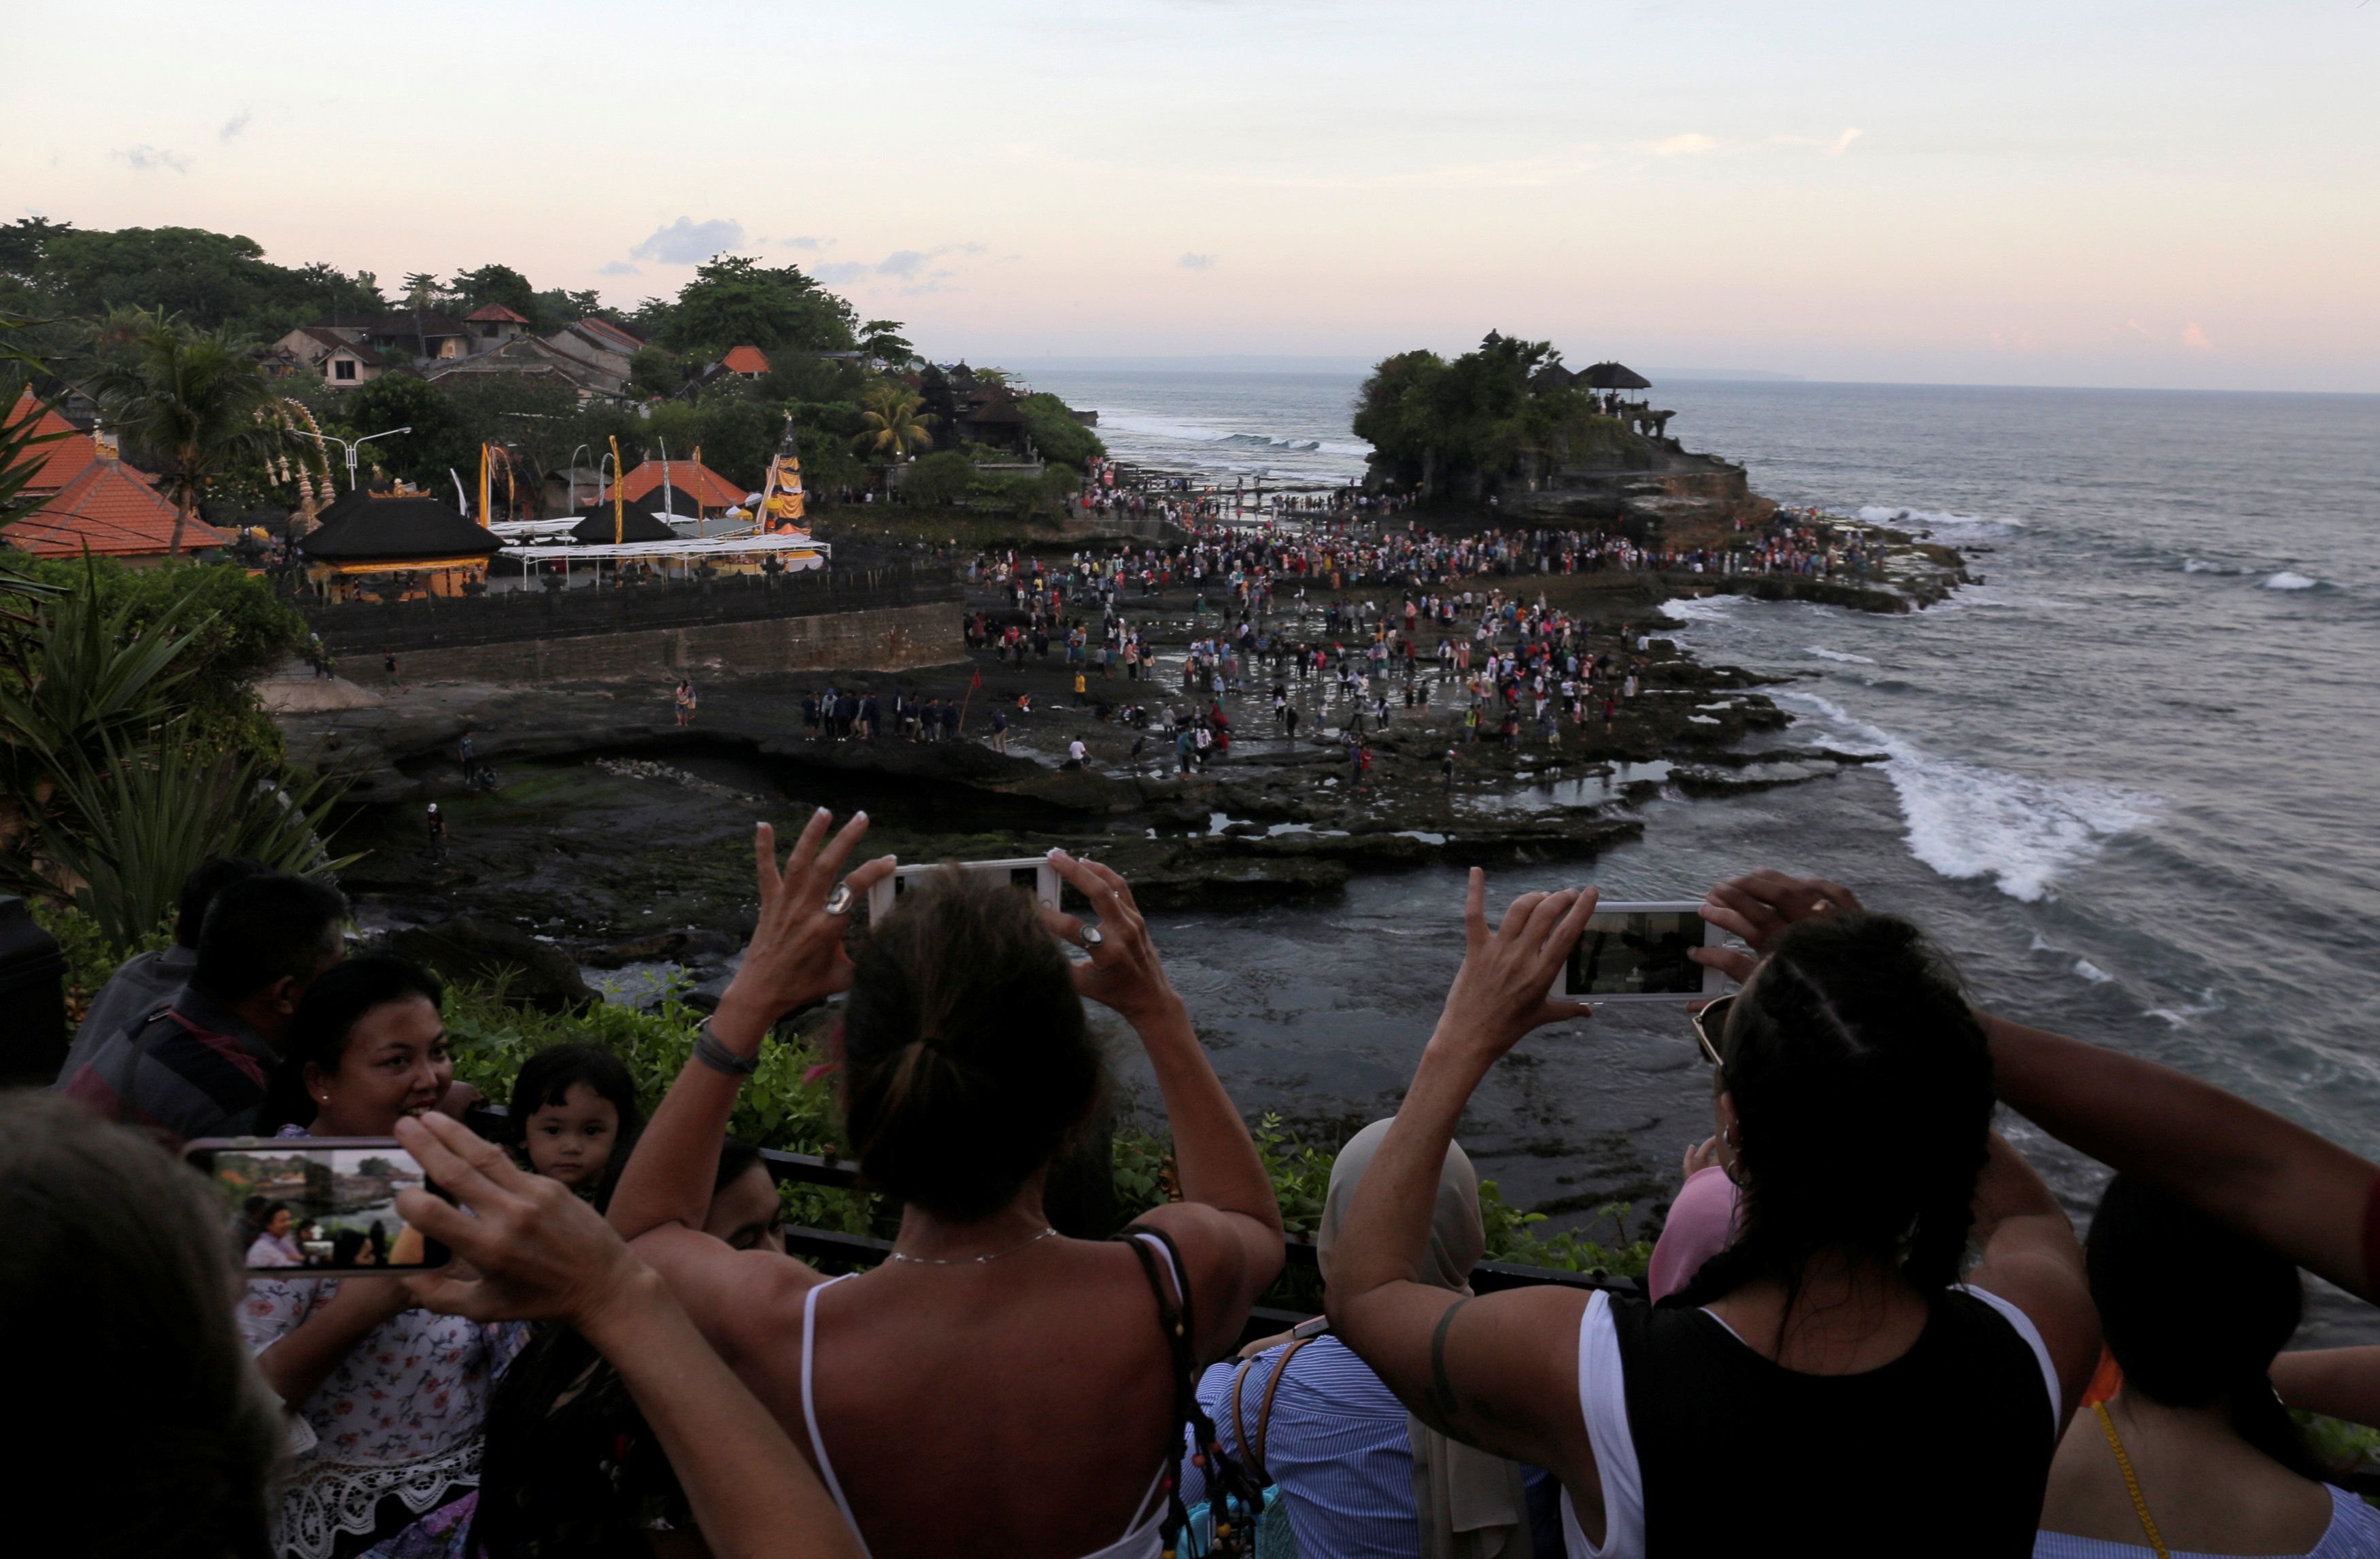 Bali To Tourists: Please Stop Posing Disrespectfully At Our Hindu